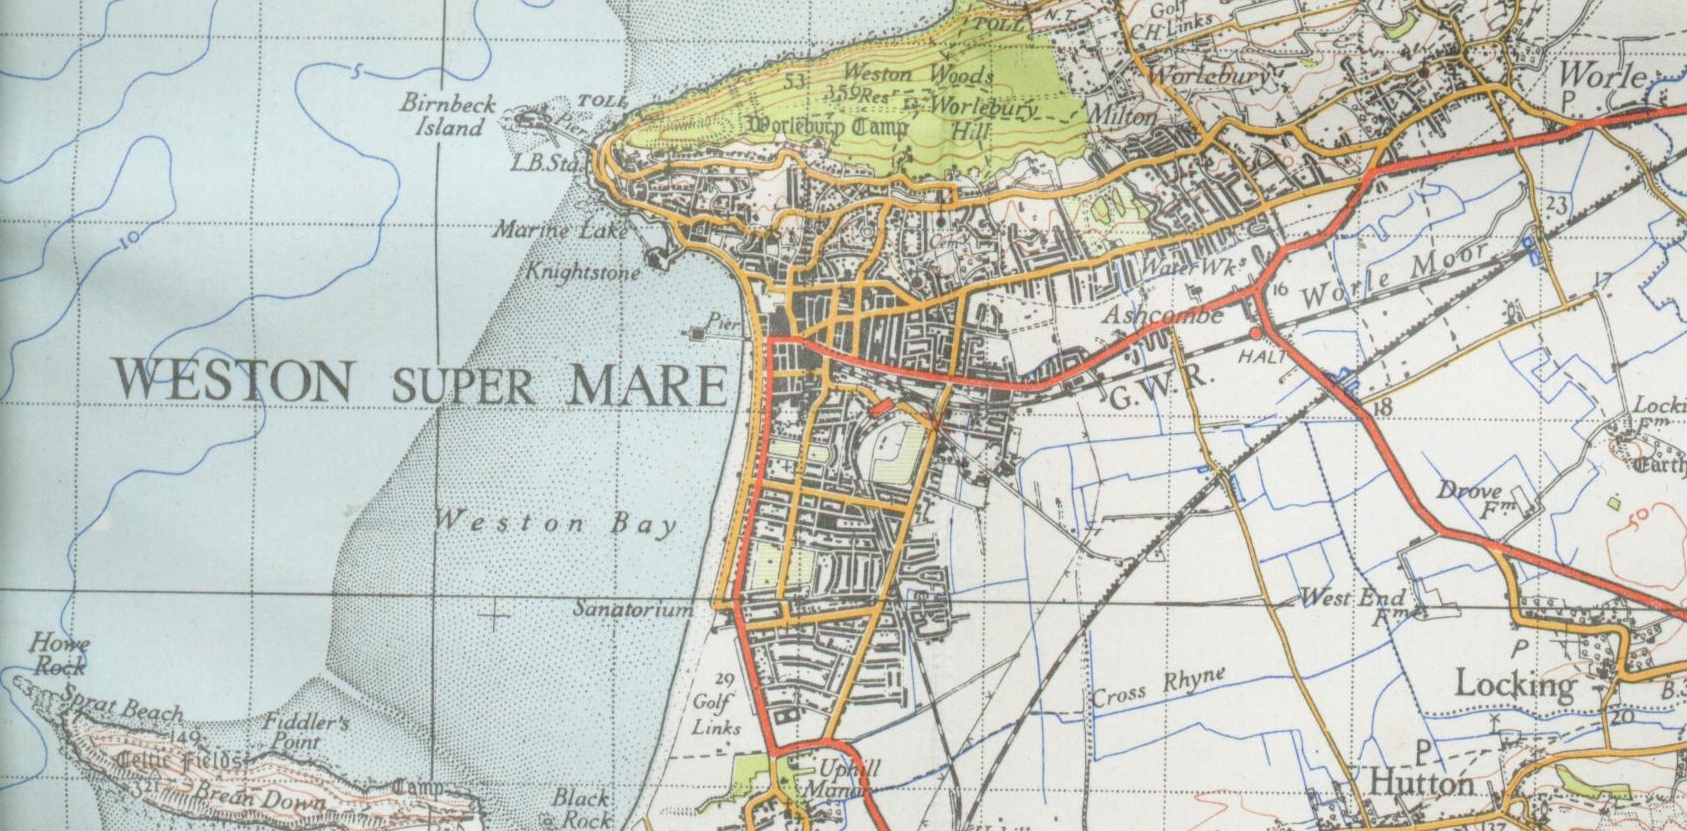 FileWestonsupermaremap 1946jpg Wikimedia Commons